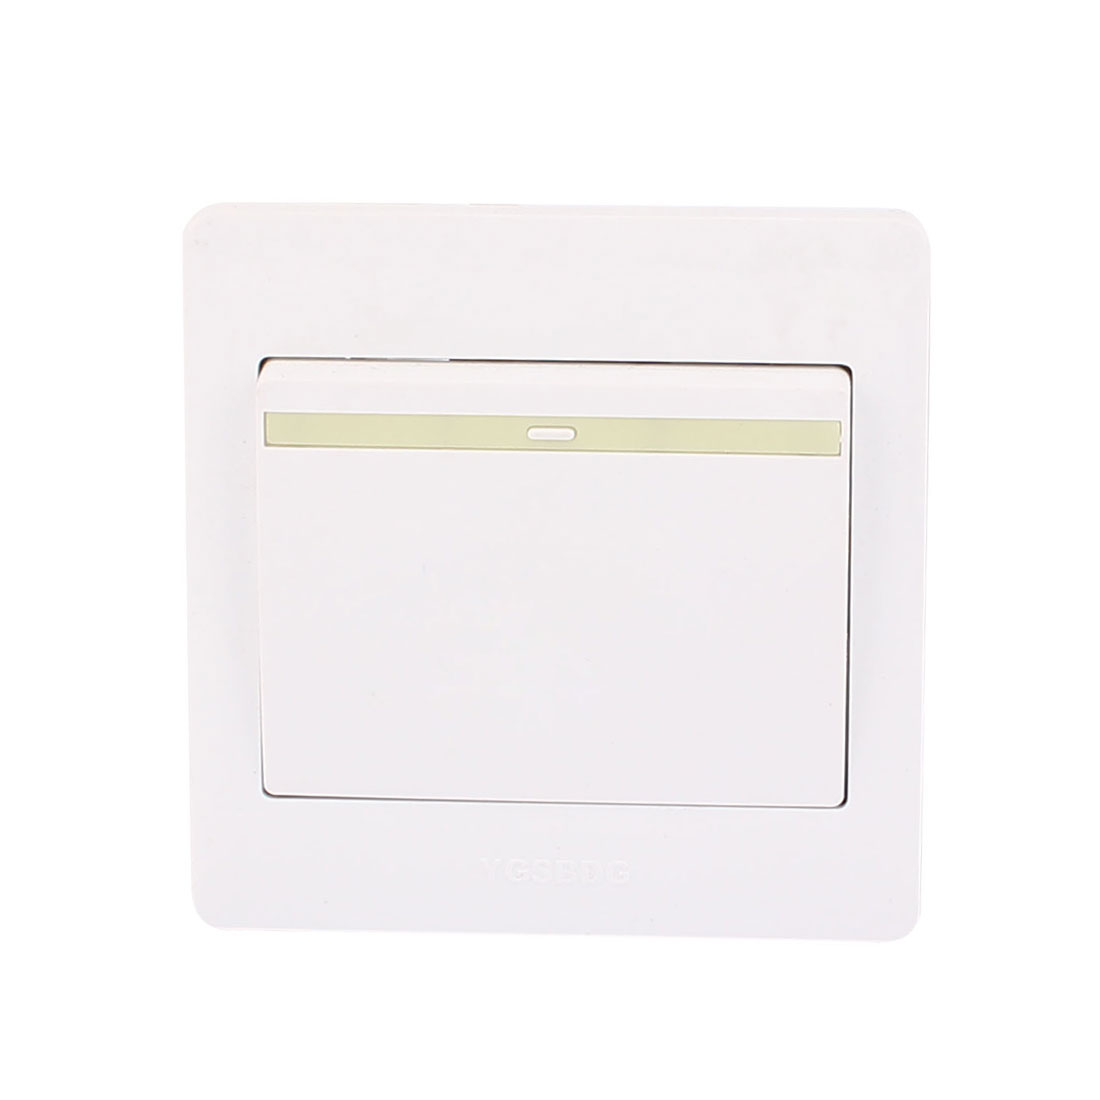 AC 250V 10A 1 Gang 2 Way On/Off 86Type Plastic Housing Wall Light Switch